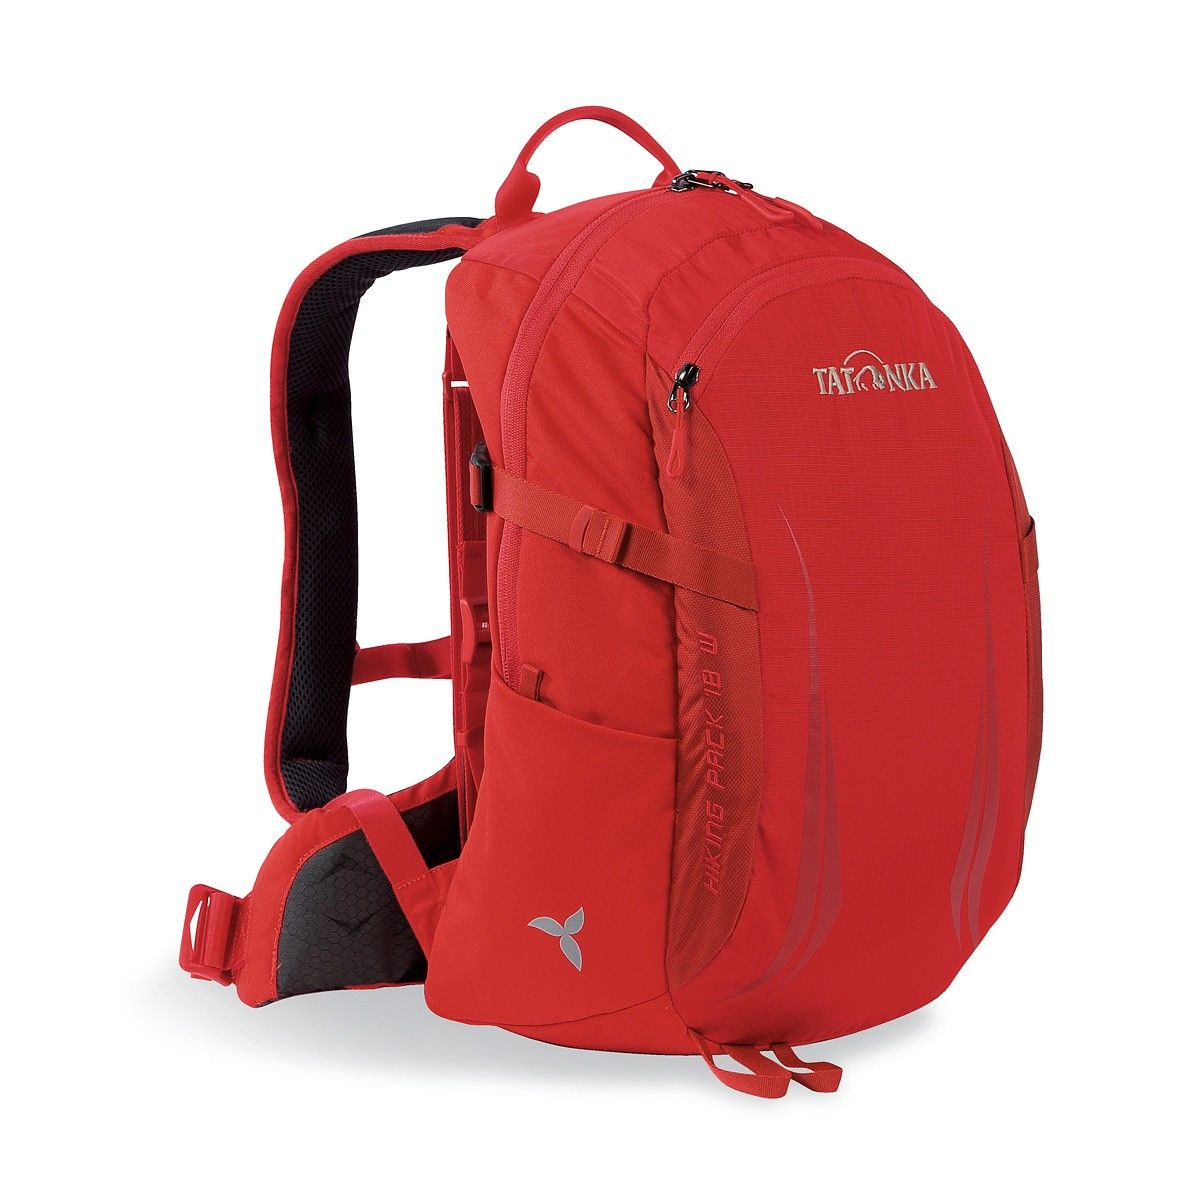 Tatonka Hiking Pack 18 Rot, Female Alpin-& Trekkingrucksack, 18l